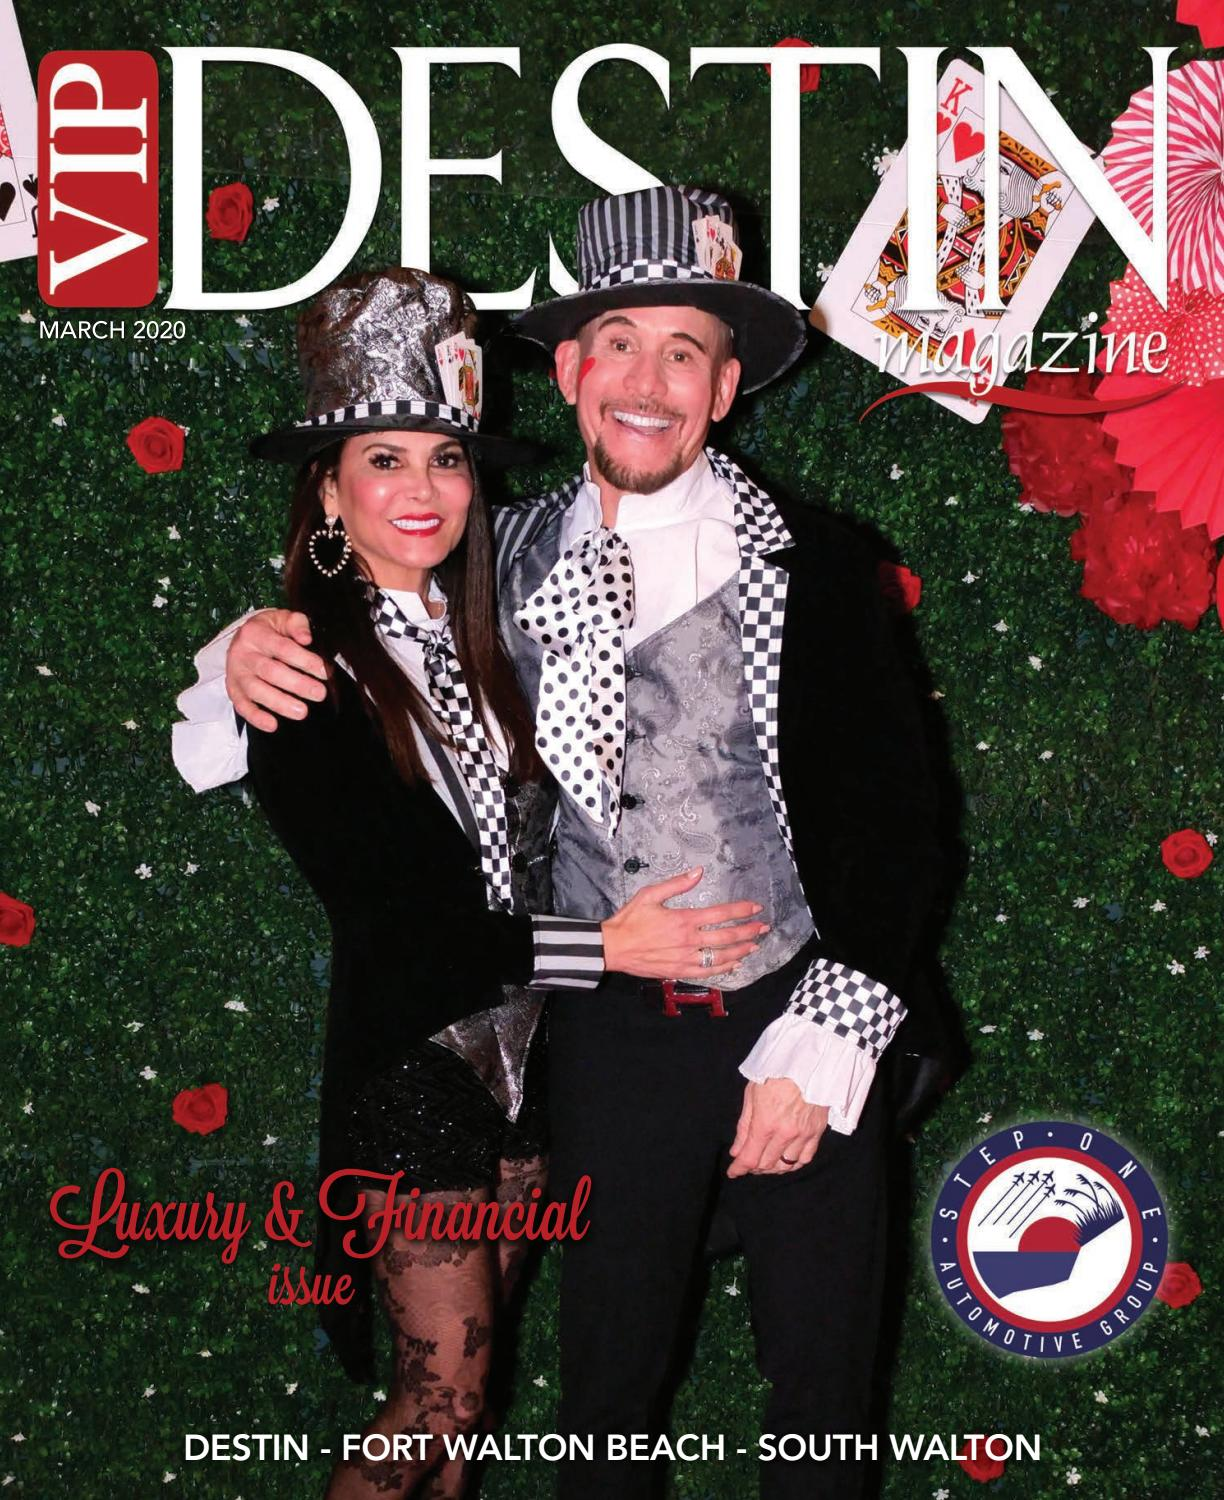 Destin Christmas Brunches 2020 VIP Destin Magazine, March 2020 by VIP Destin, LLC   issuu